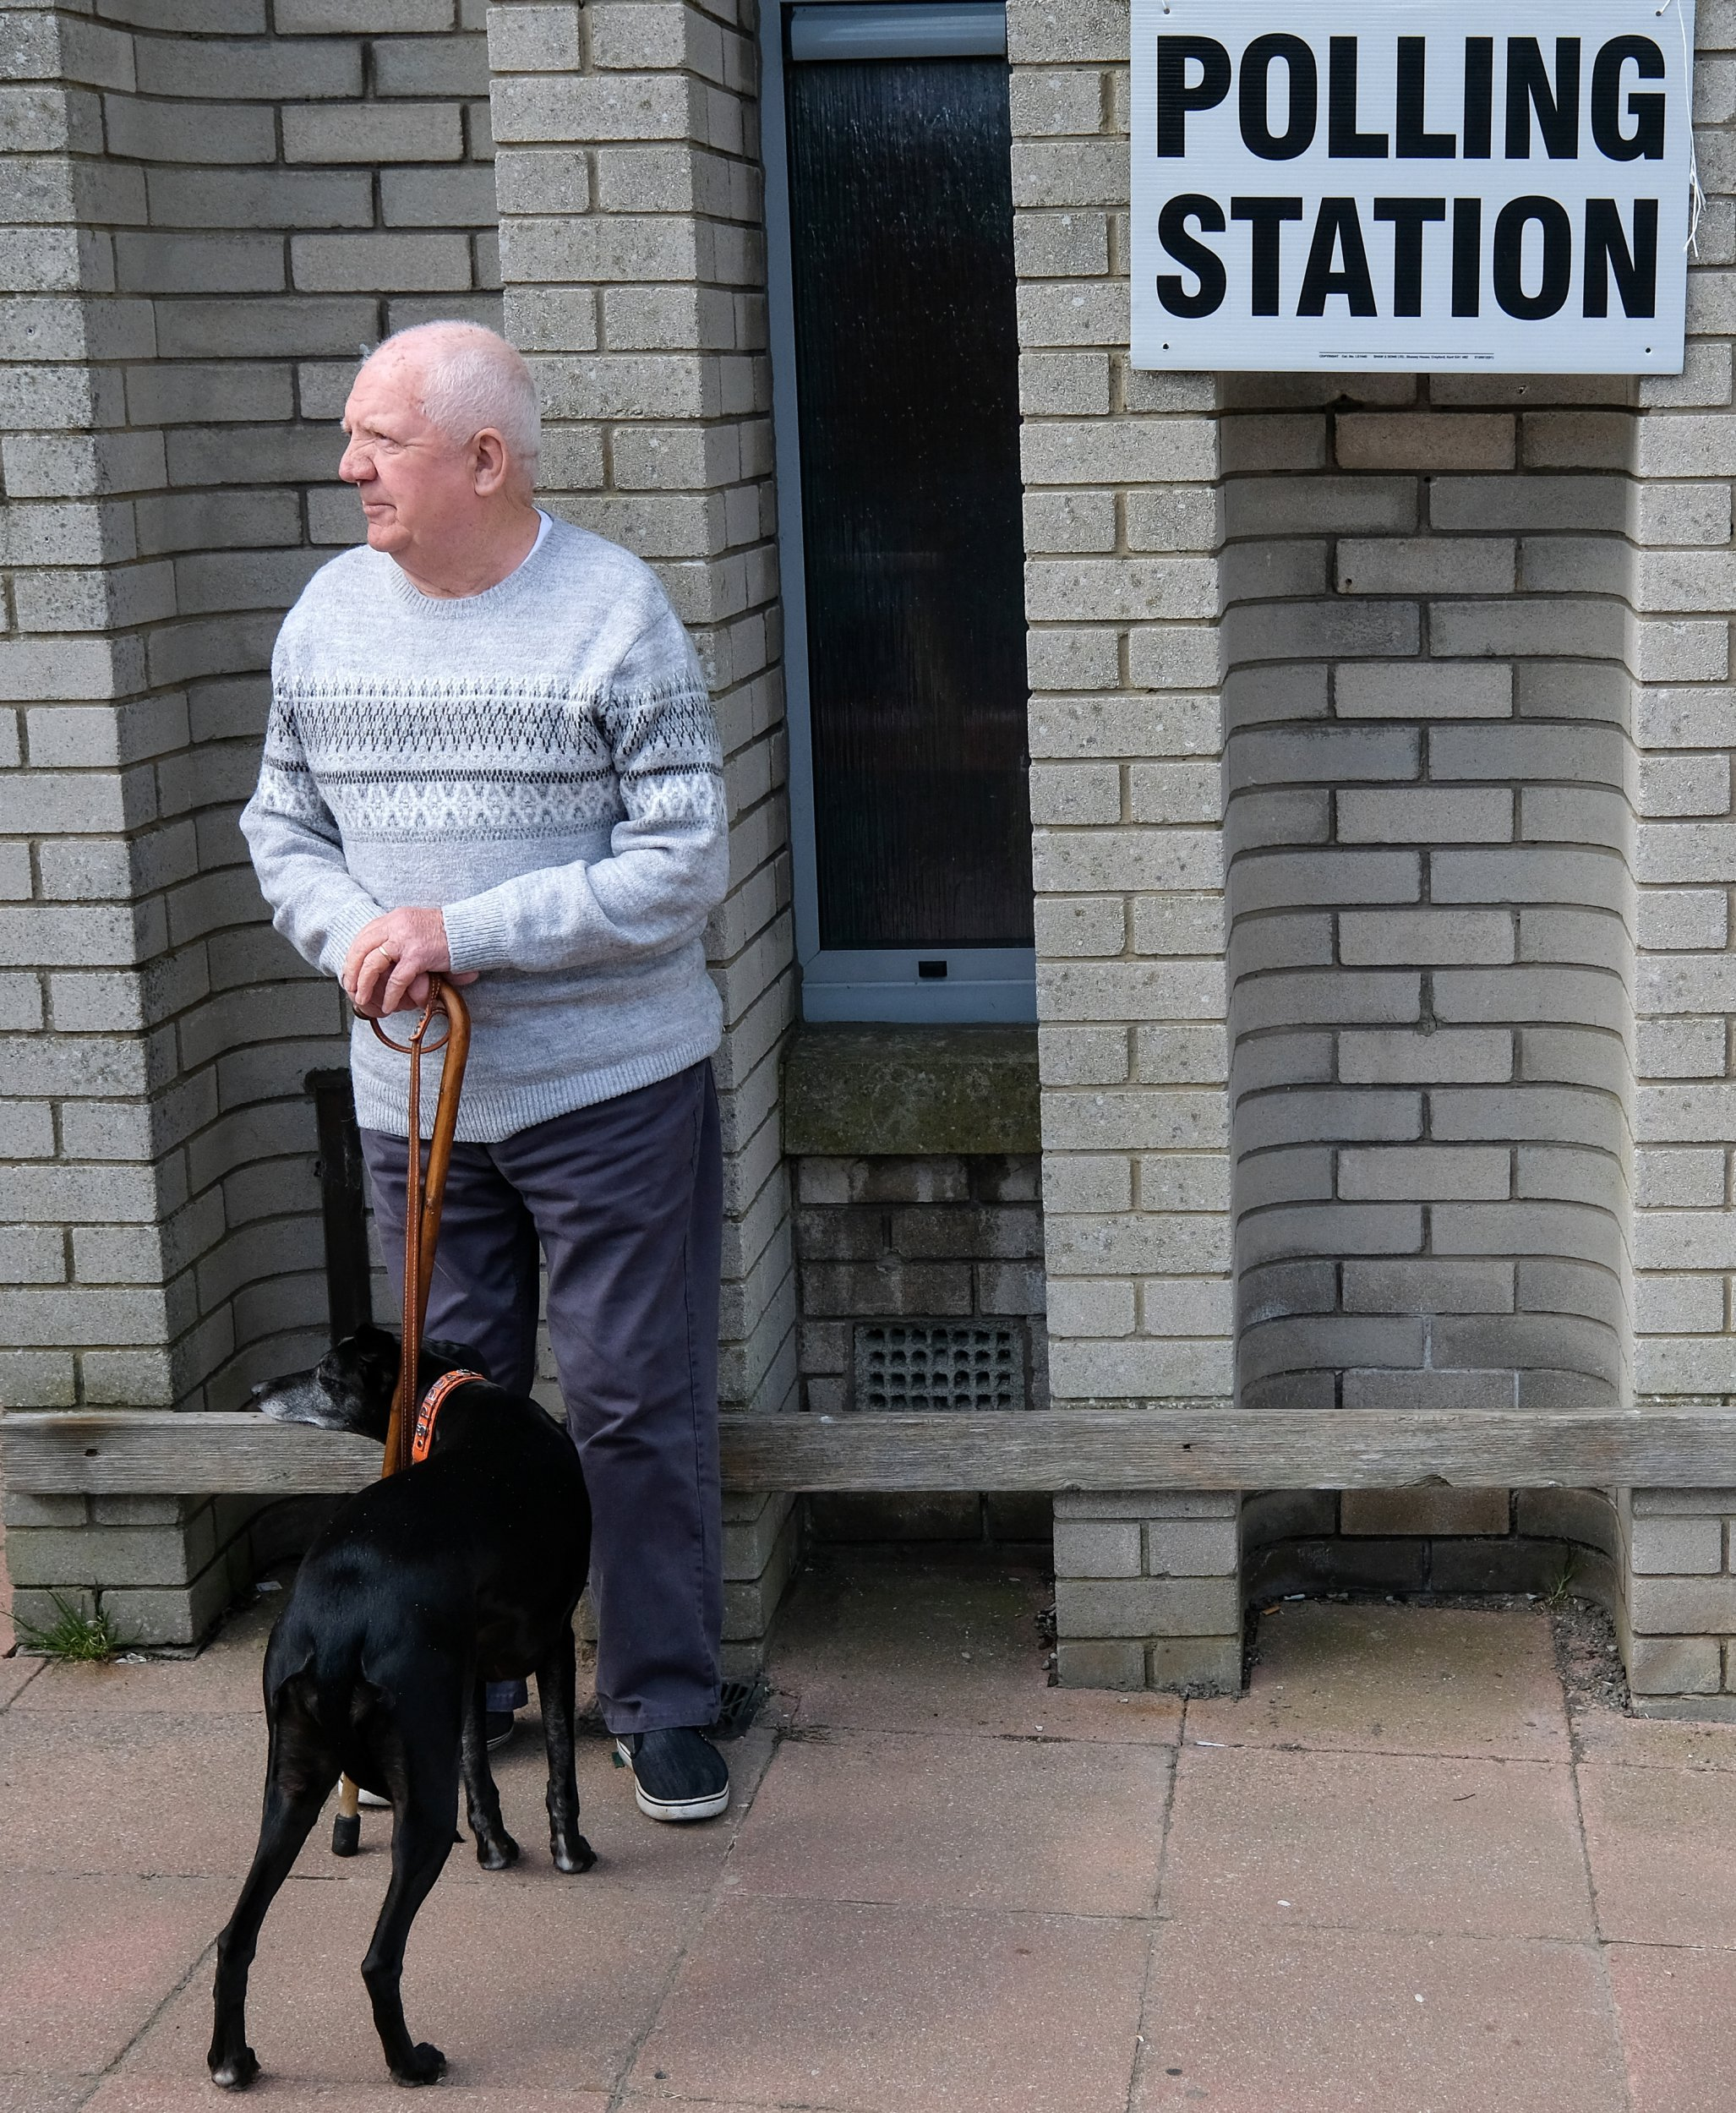 SKELTON, UNITED KINGDOM - MAY 02: A man stands with his dog outside a polling station during local elections on May 02, 2019 in Skelton, United Kingdom. Elections are being held in 248 councils across England and Northern Ireland today. (Photo by Ian Forsyth/Getty Images)